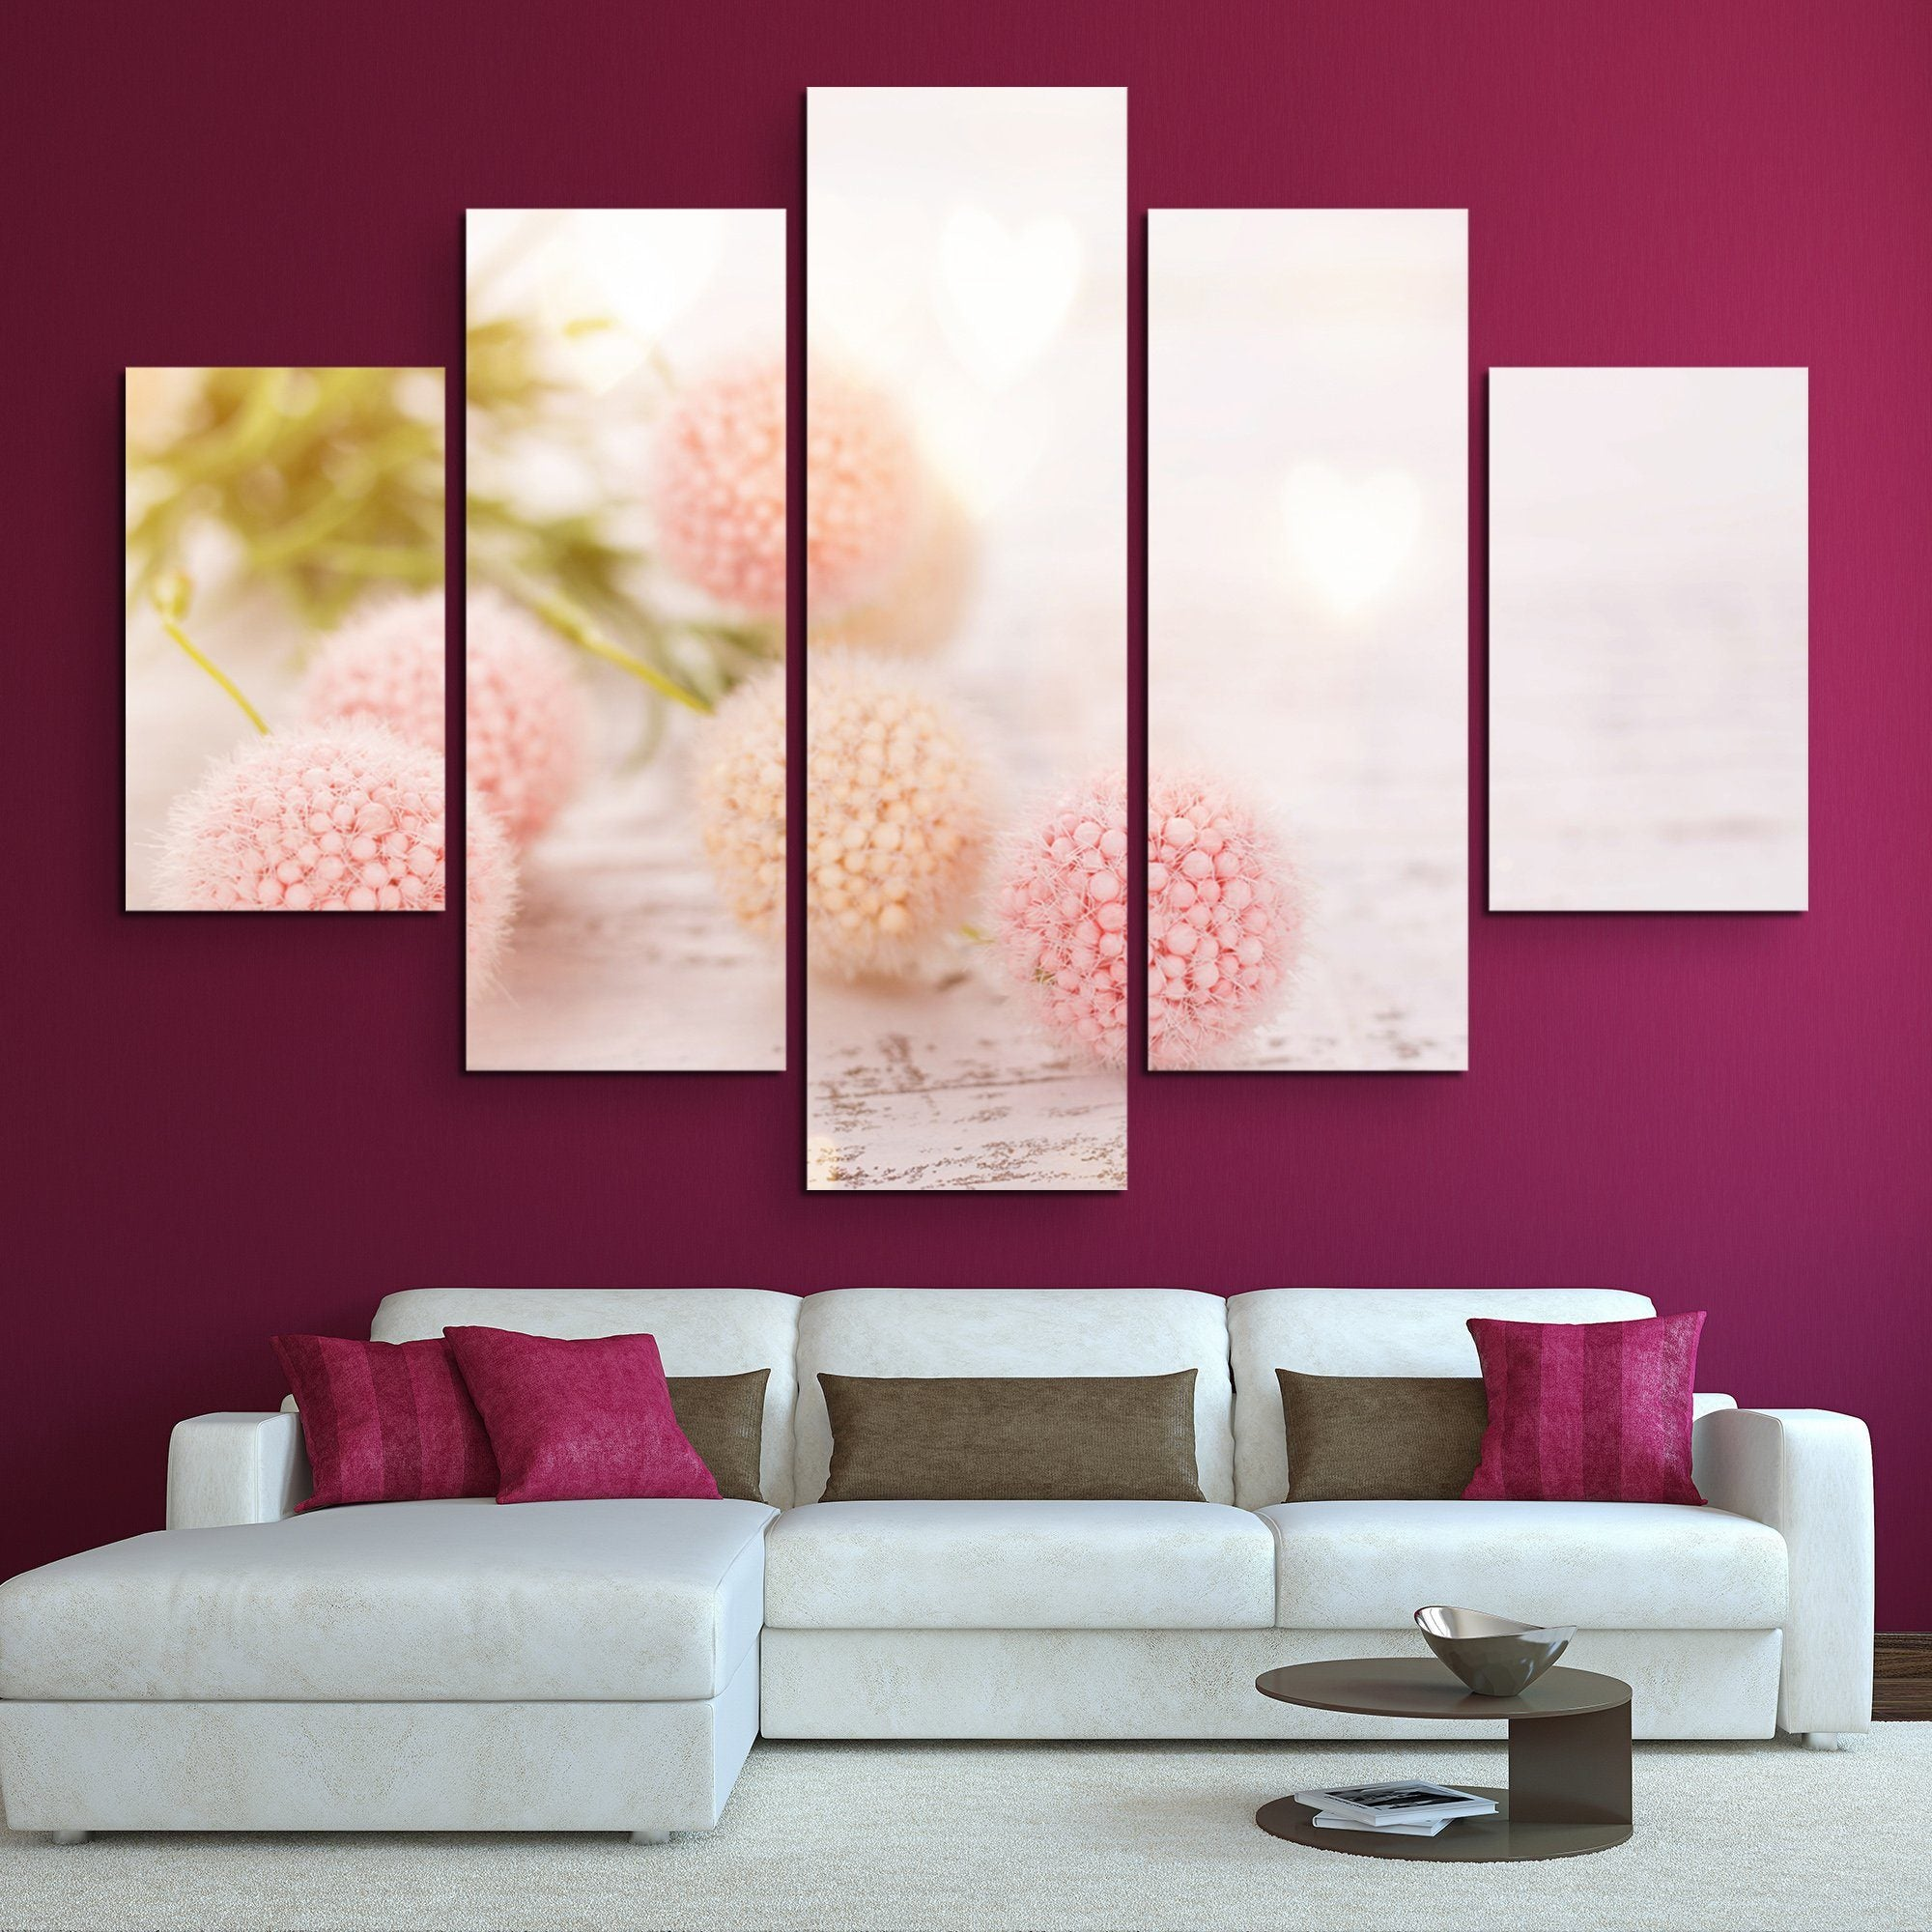 5 piece Flower Ball wall art